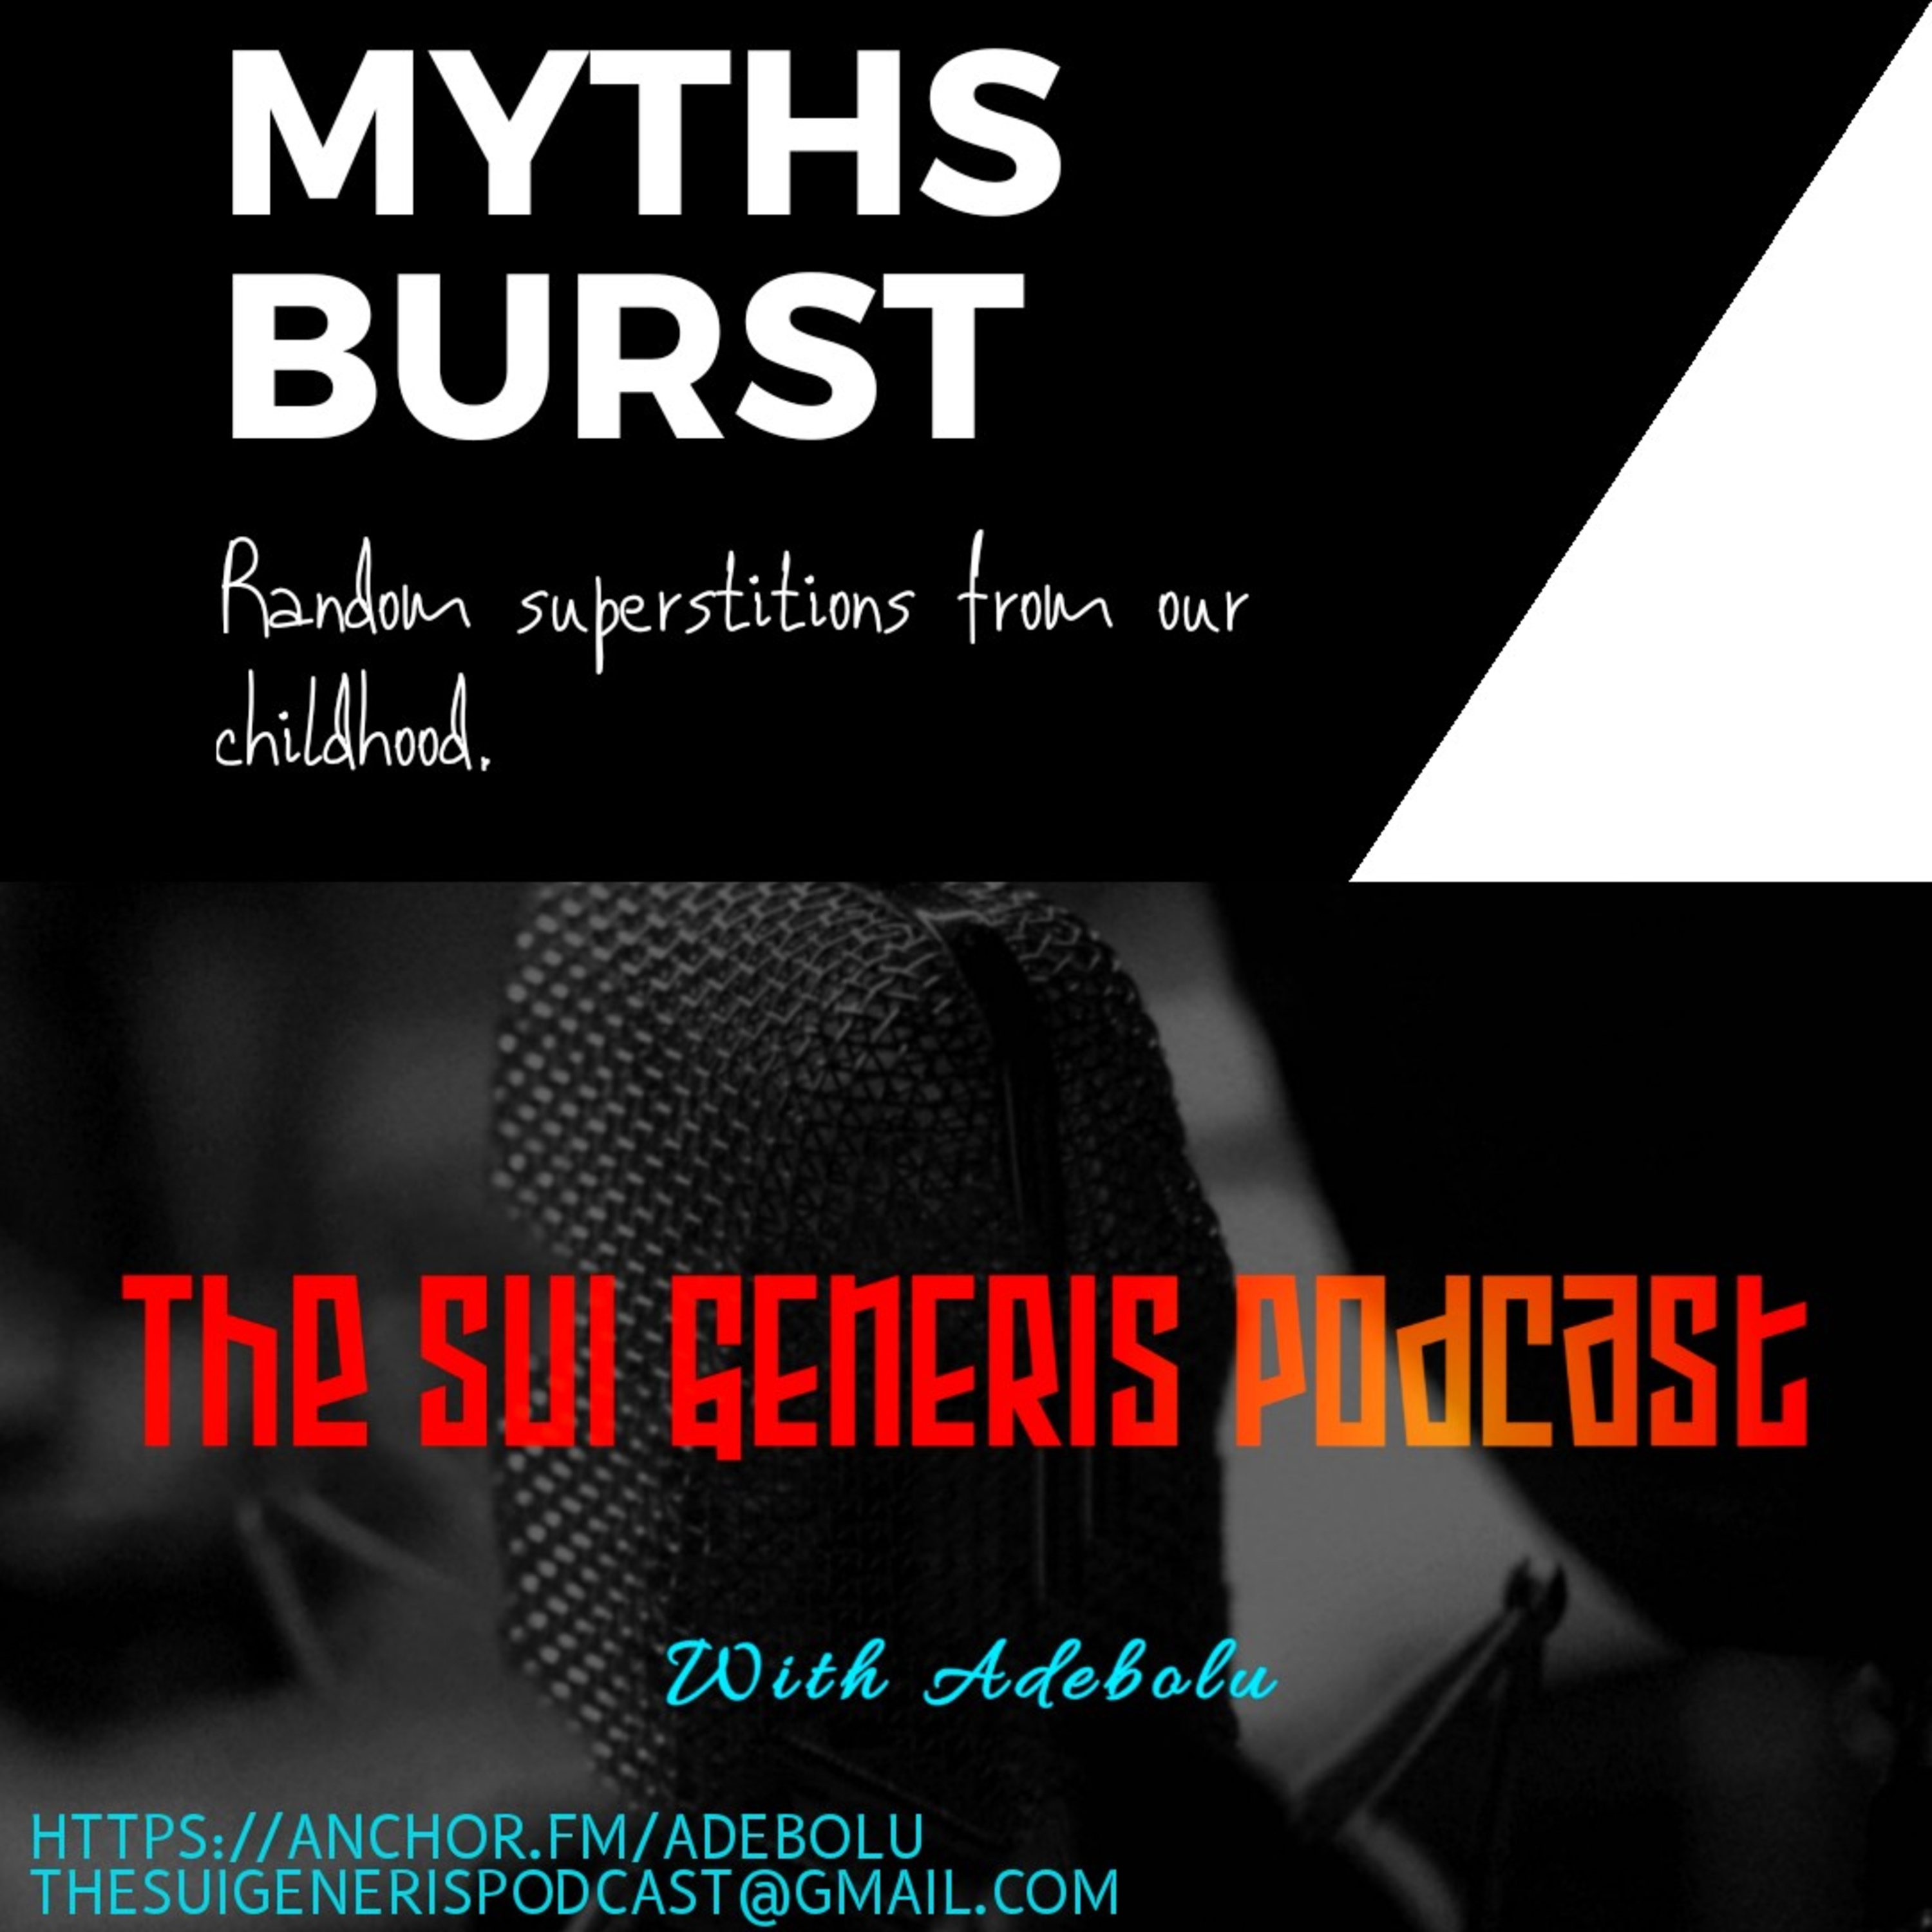 The Sui Generis Podcast on Jamit